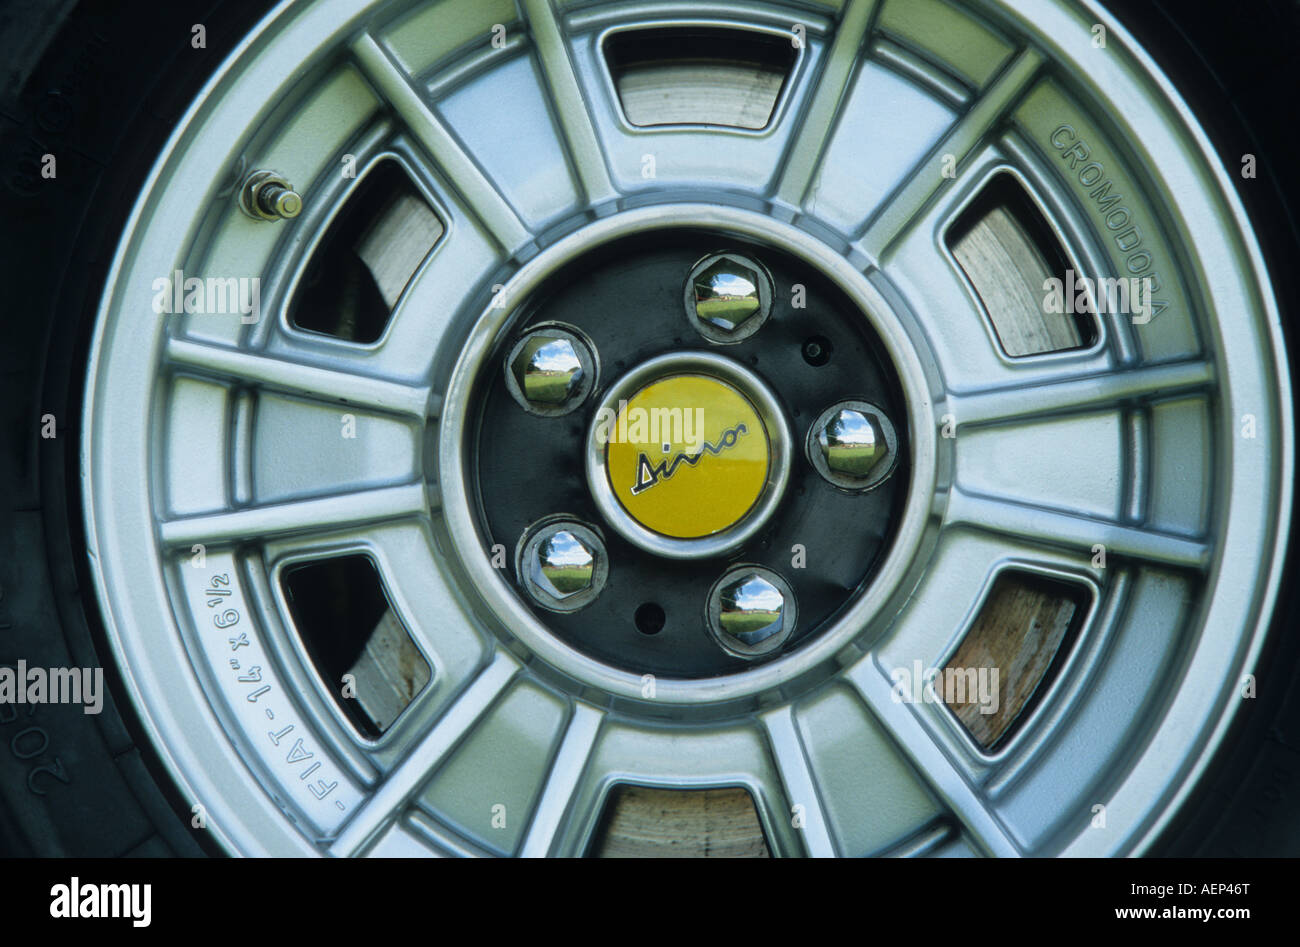 Ferrari Alloy Wheel Stock Photos & Ferrari Alloy Wheel Stock Images ...